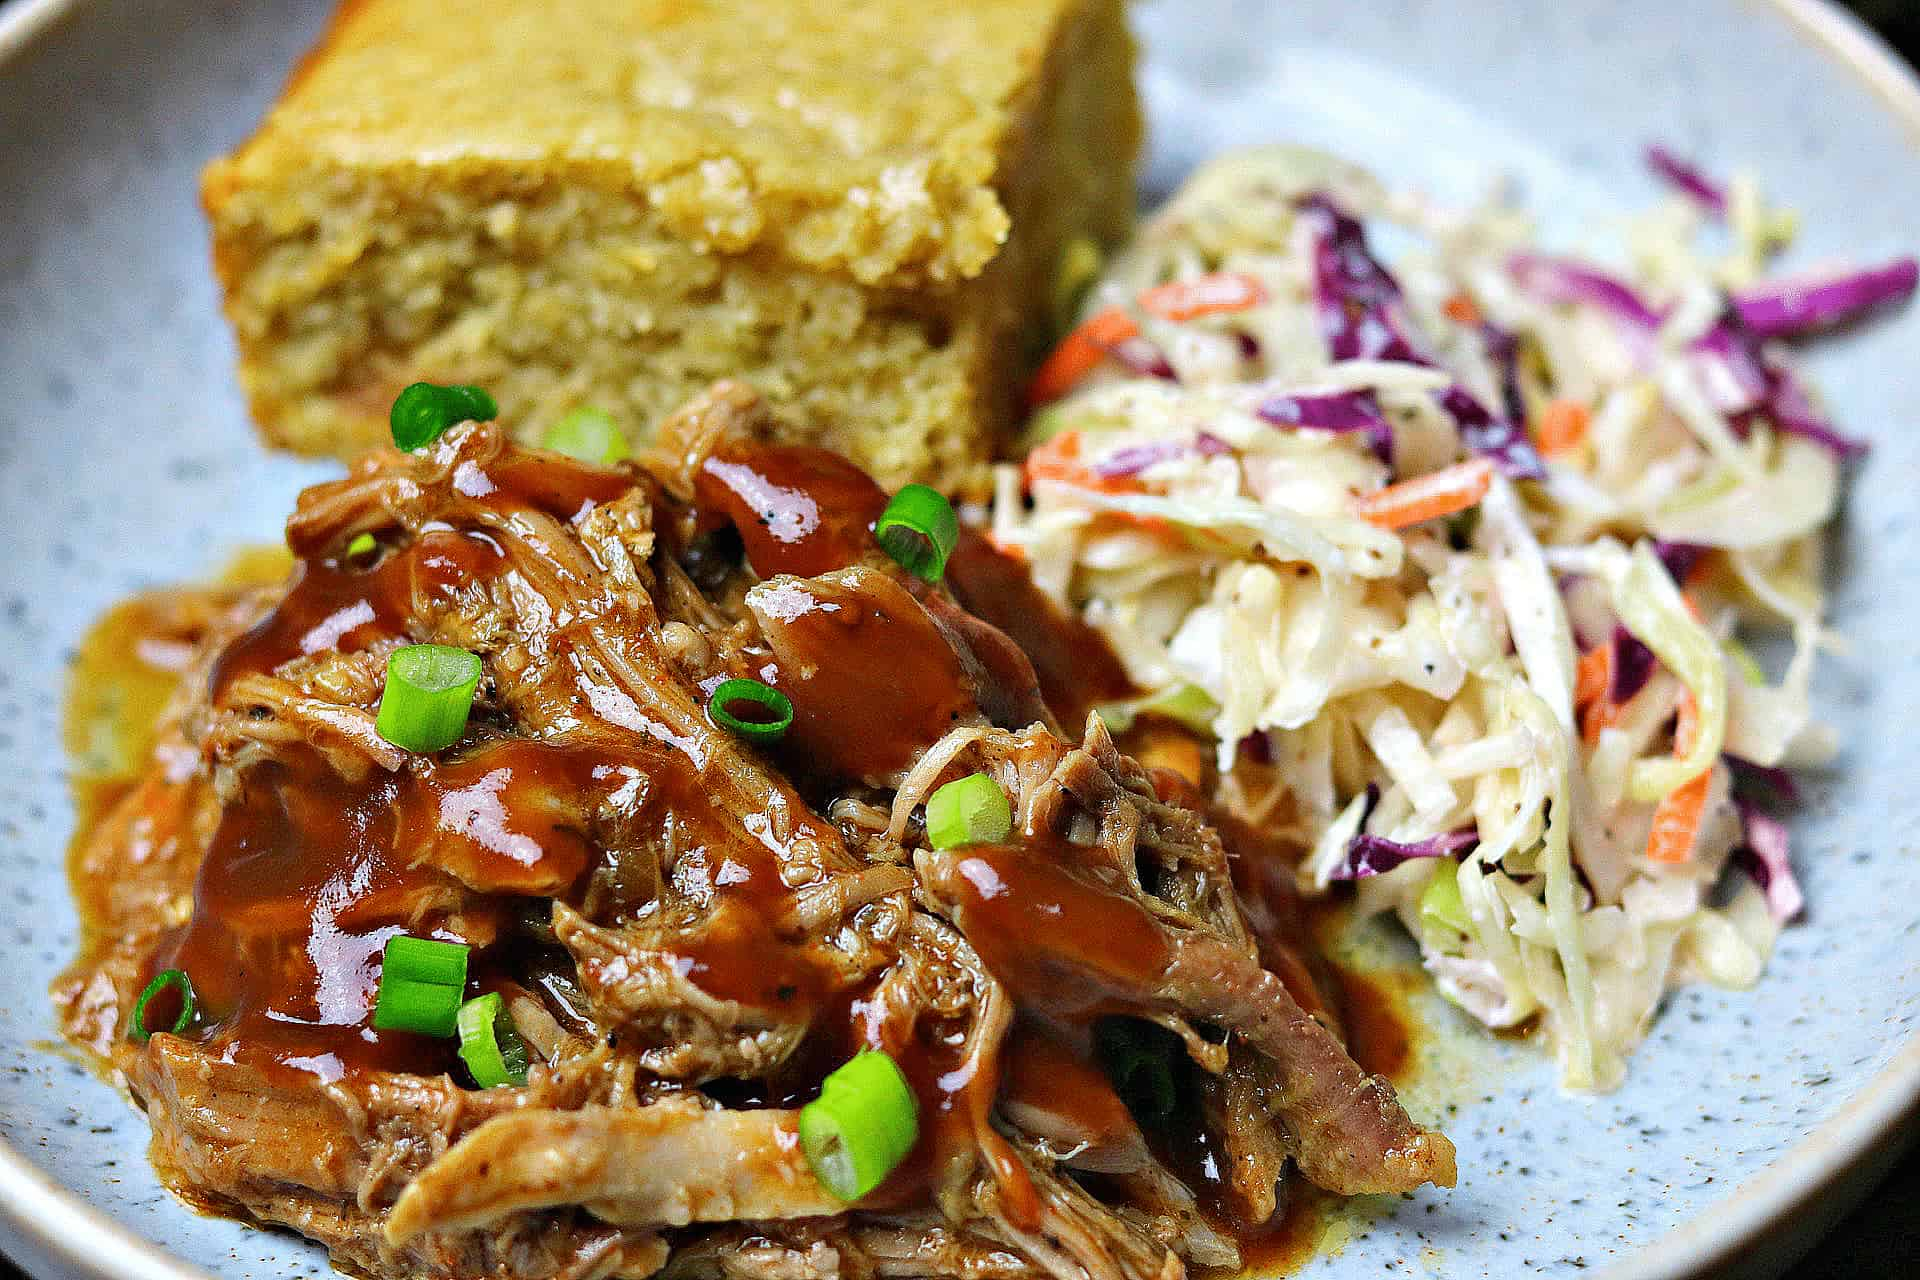 a close-up of Keto BBQ Pulled Pork on a plate with corn-free bread and keto coleslaw